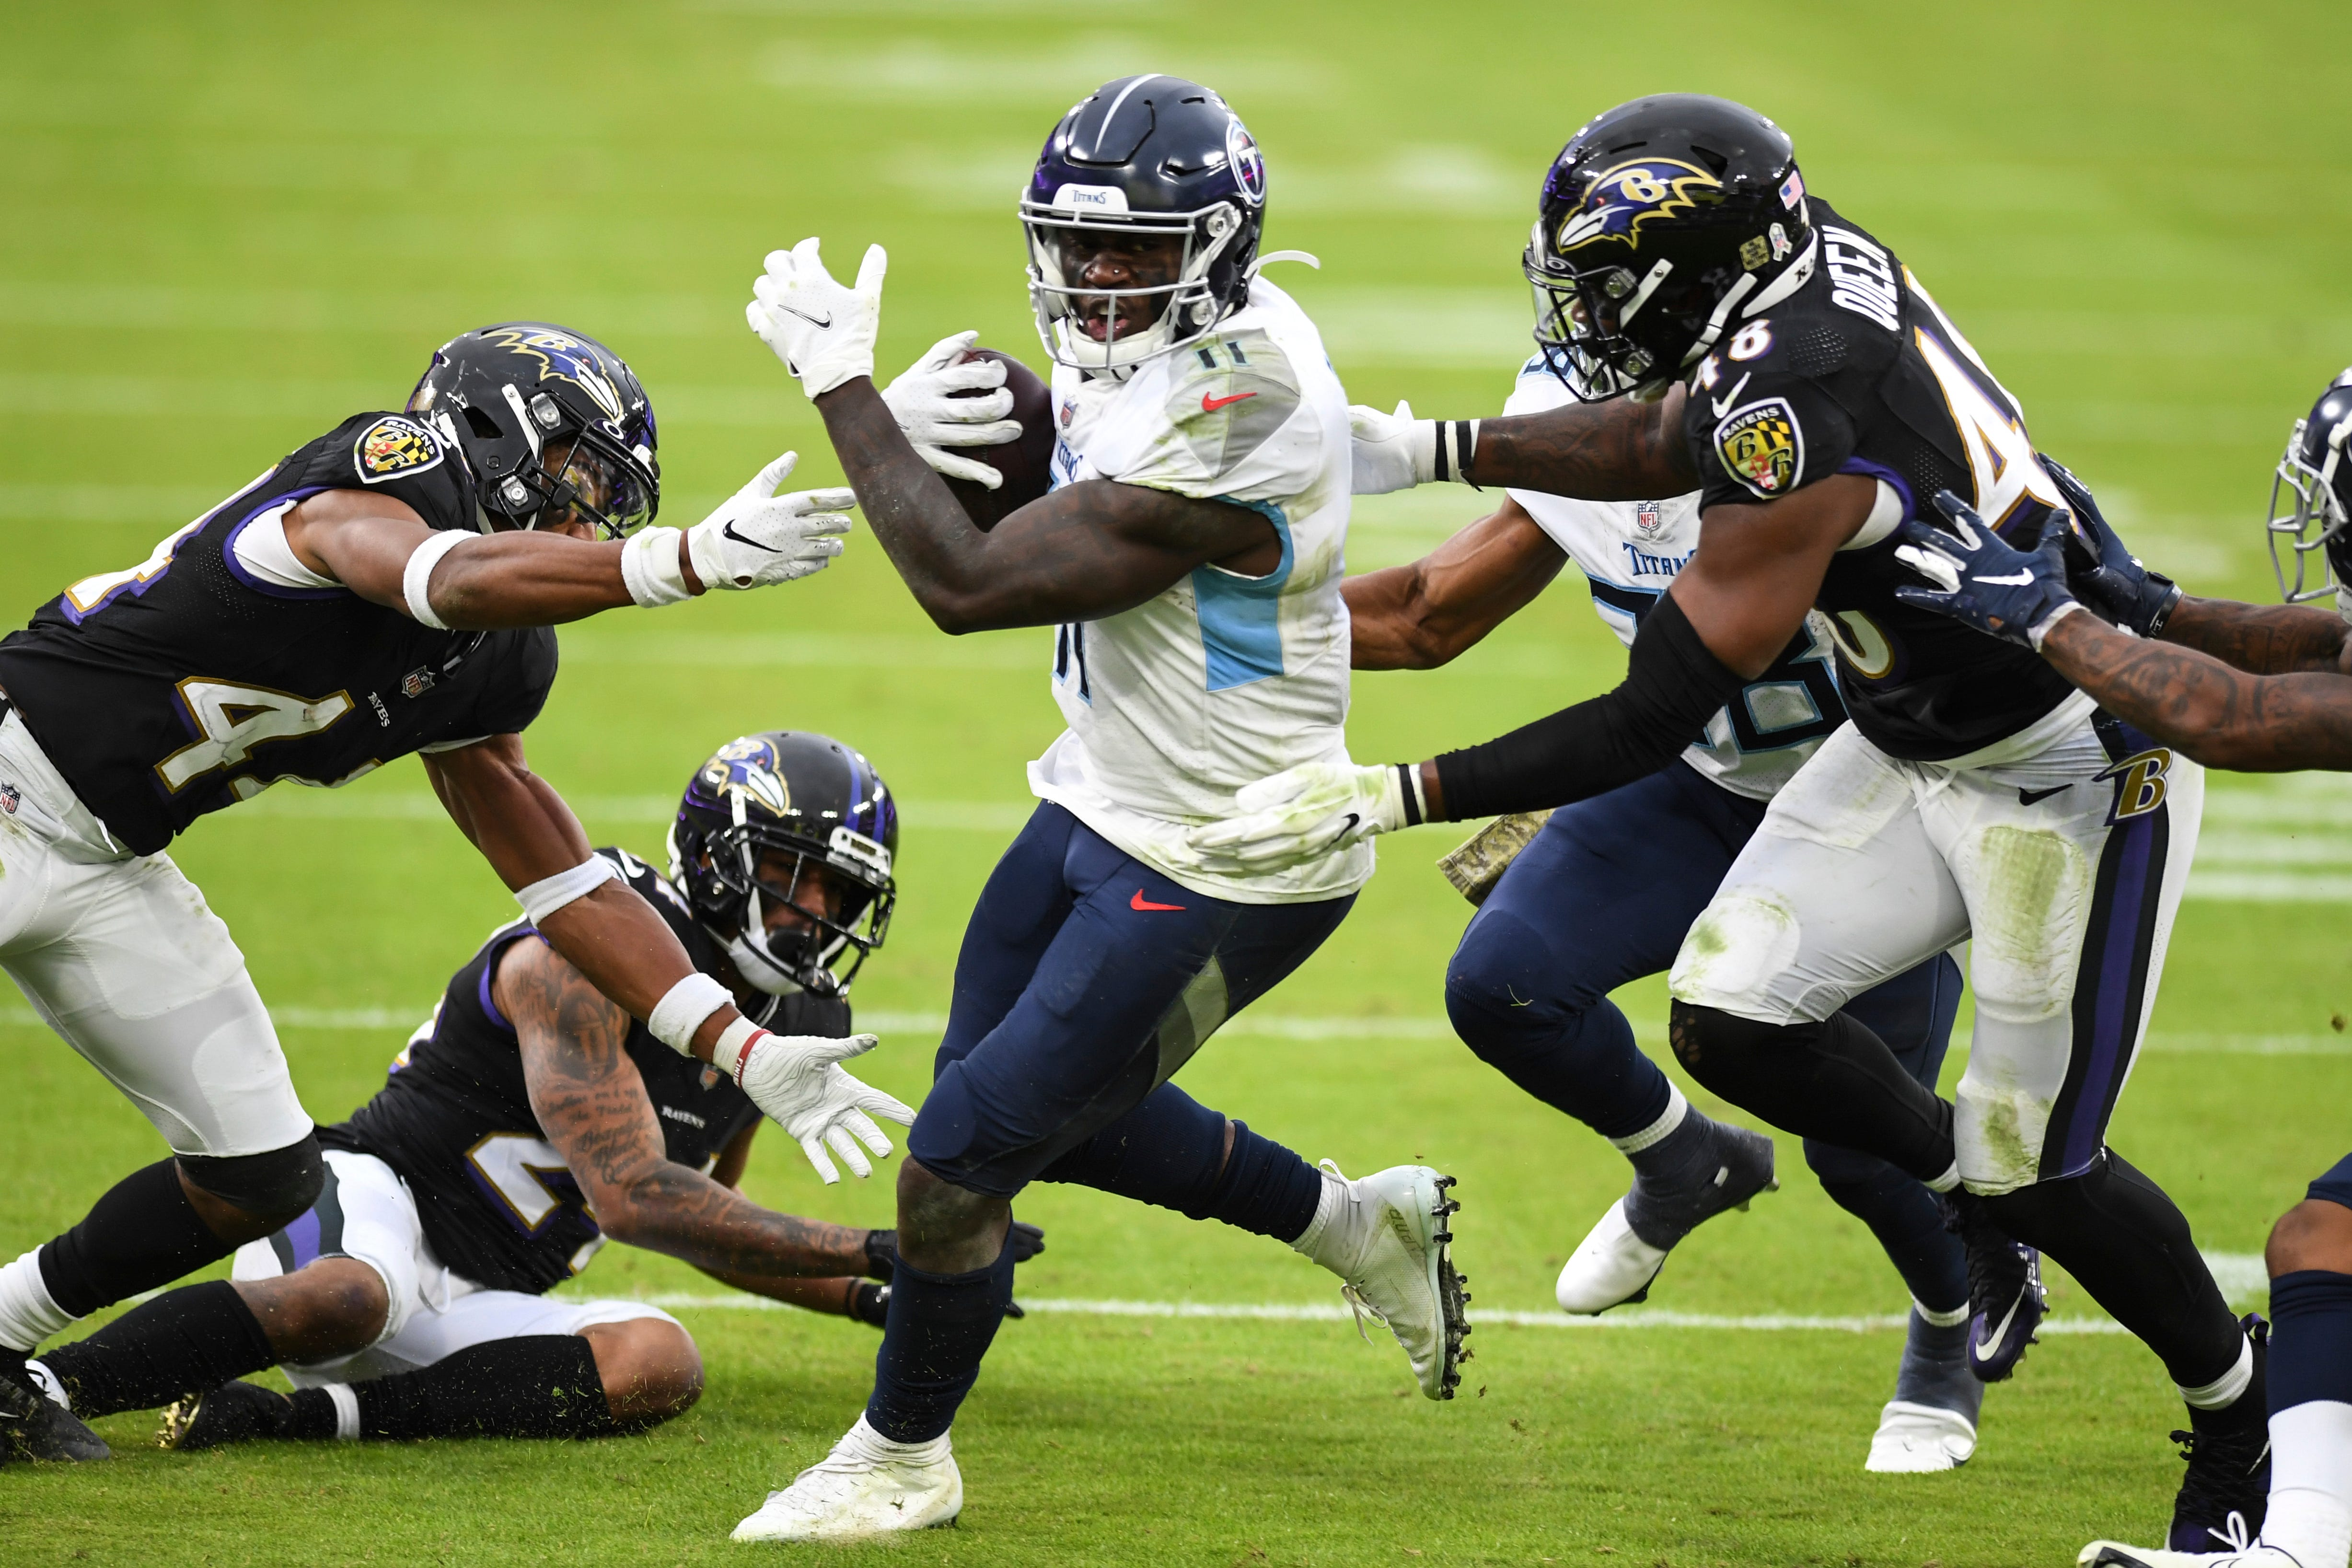 Opinion: Titans leave no doubt who 'wanted it more' while Ravens raise questions about their will